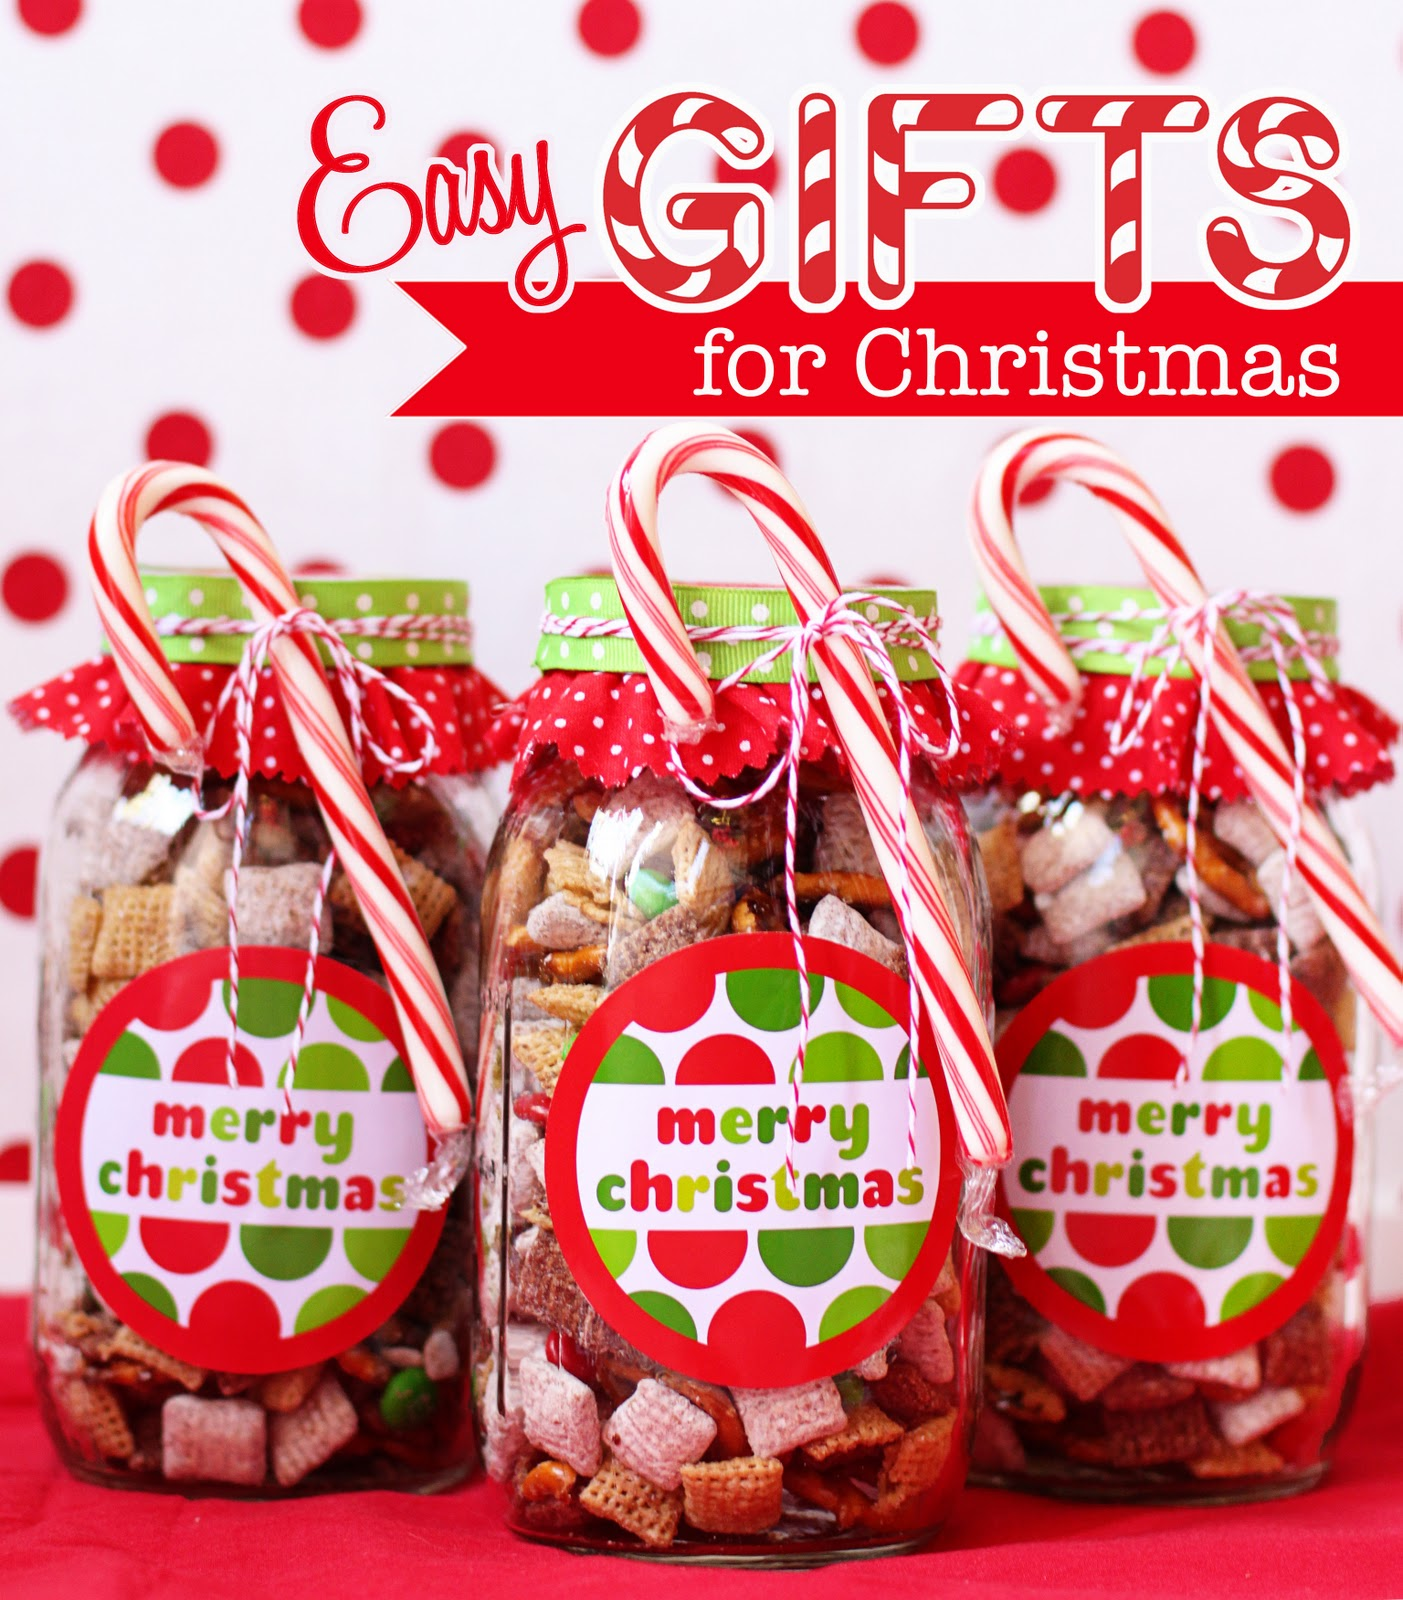 25 ADORABLE Homemade Christmas Edible Gifts So Yummy And Cute The36thavenue